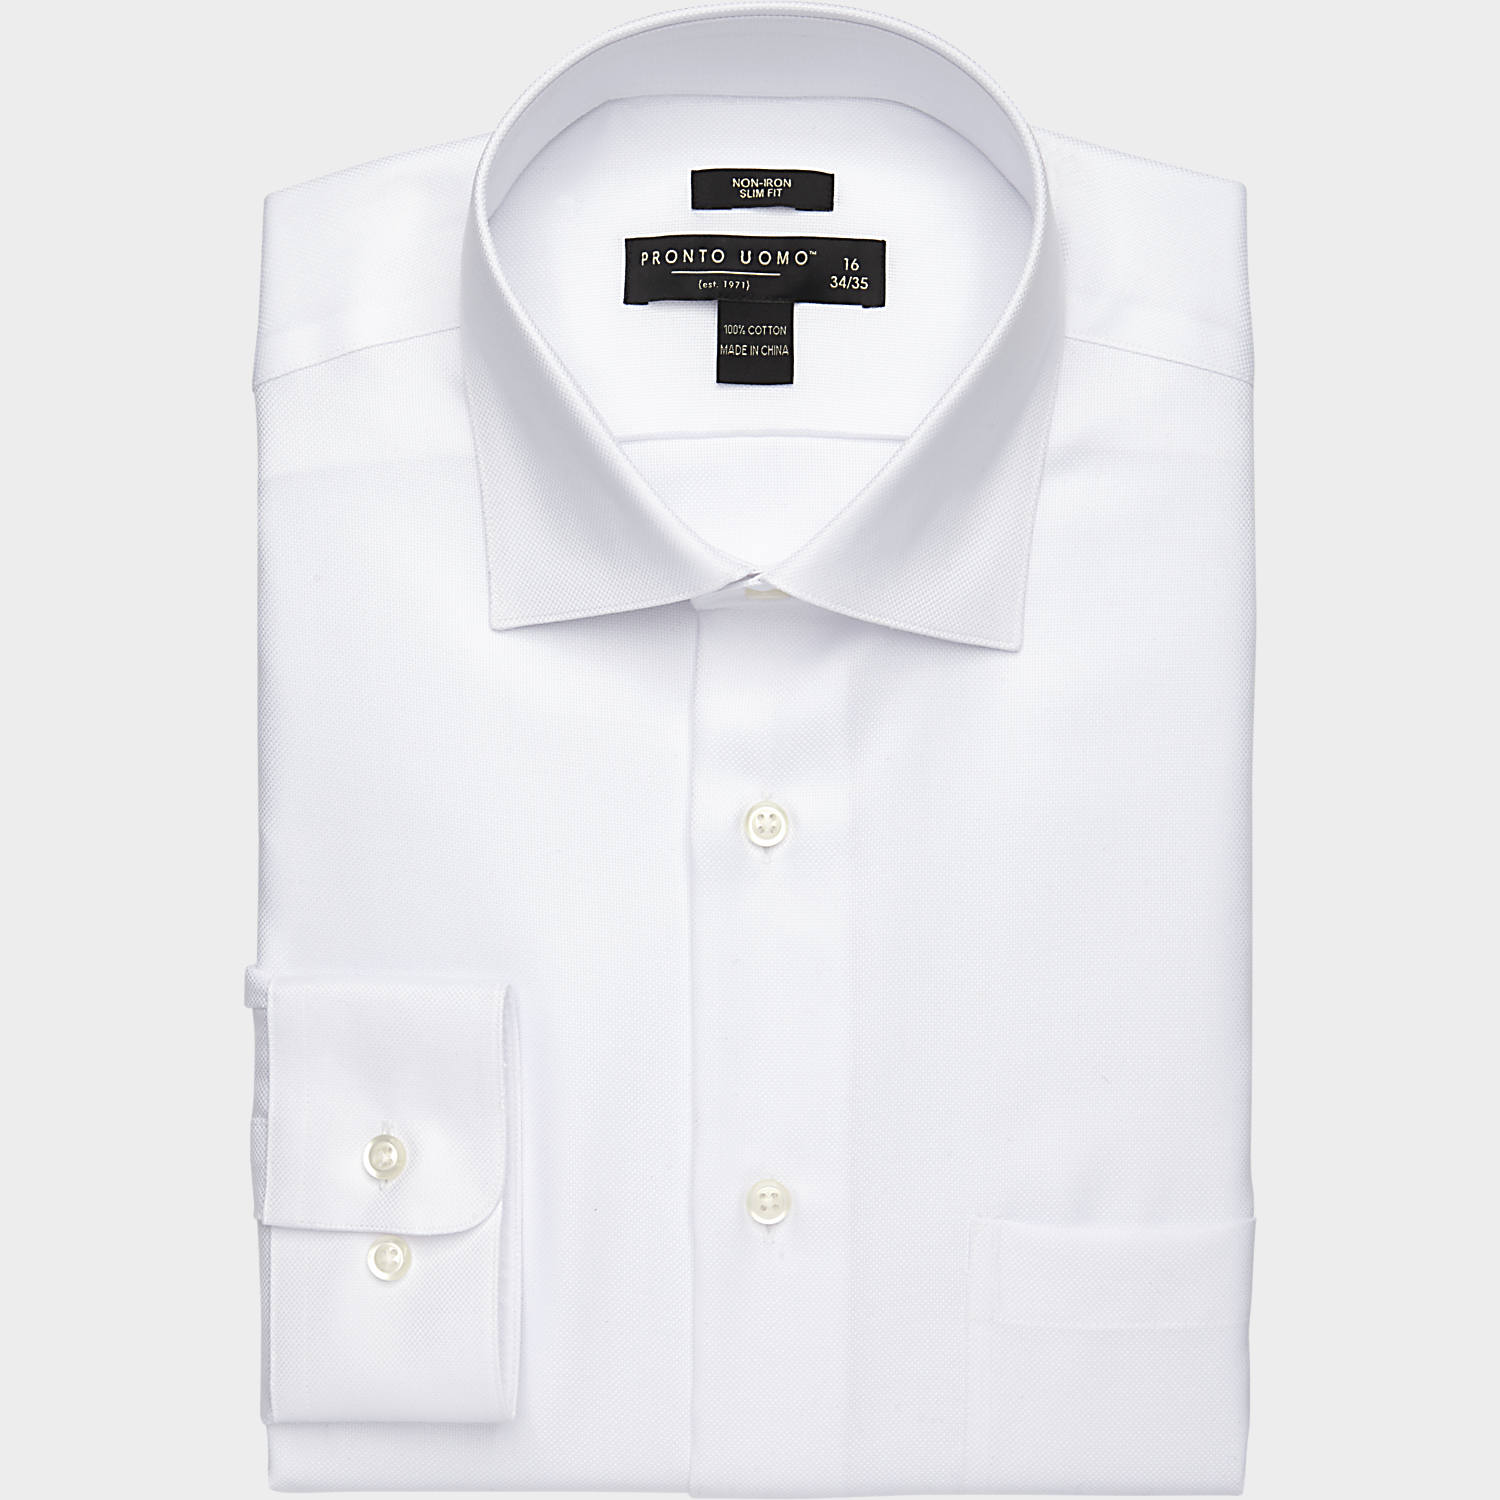 White dress shirt all dress for Dress shirt no pocket